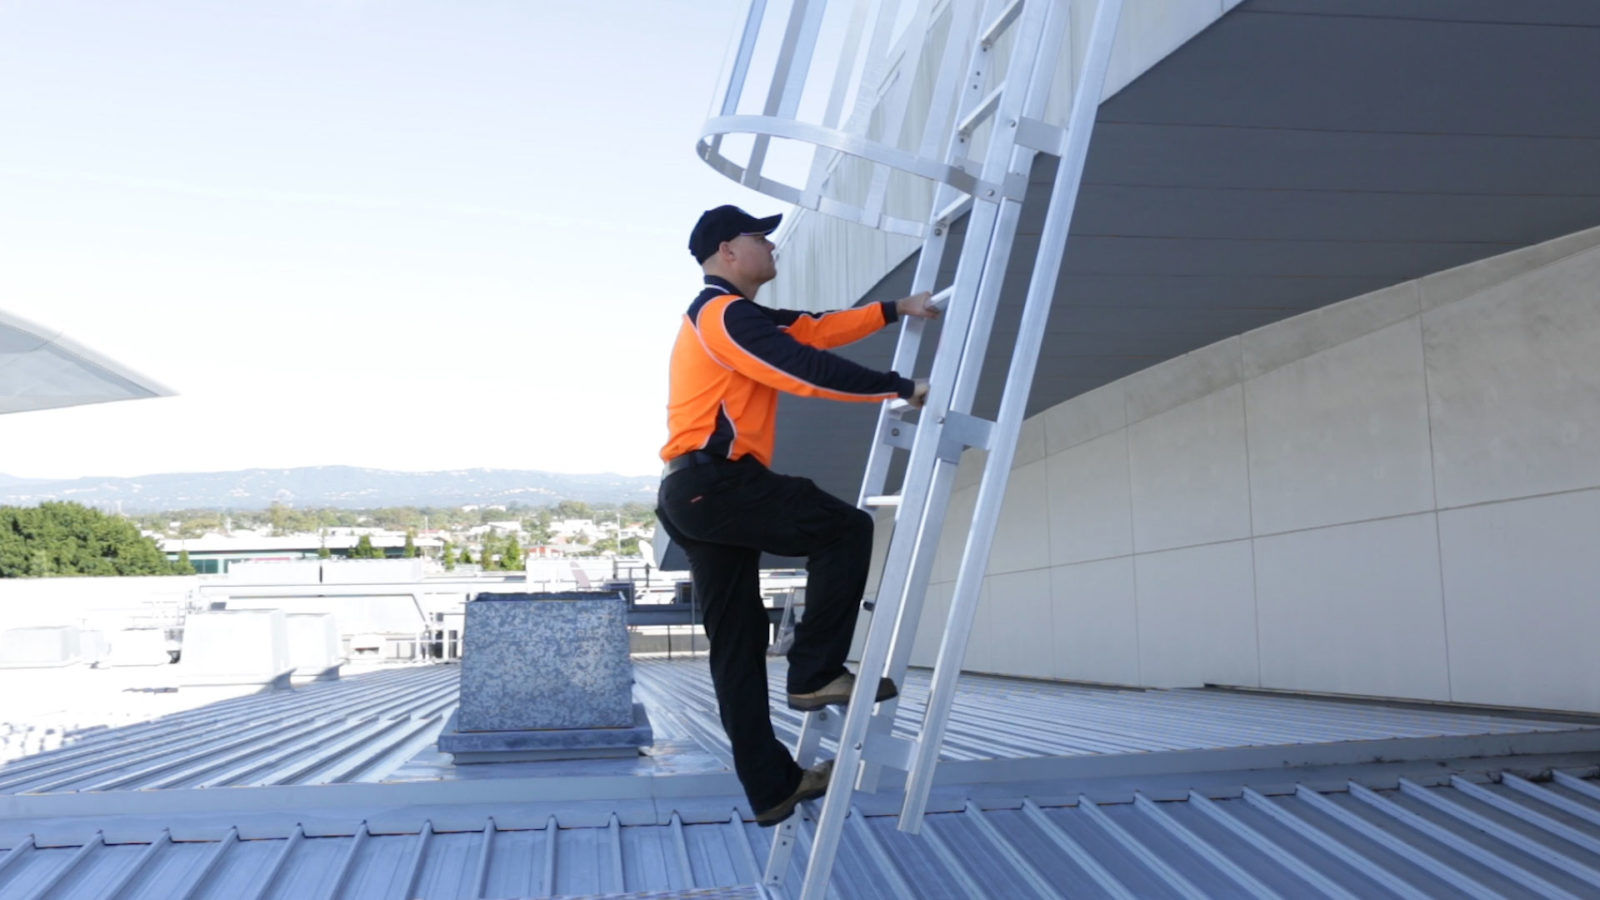 Roof Access Cage Ladders Safe At Heights Brisbane Queensland 5